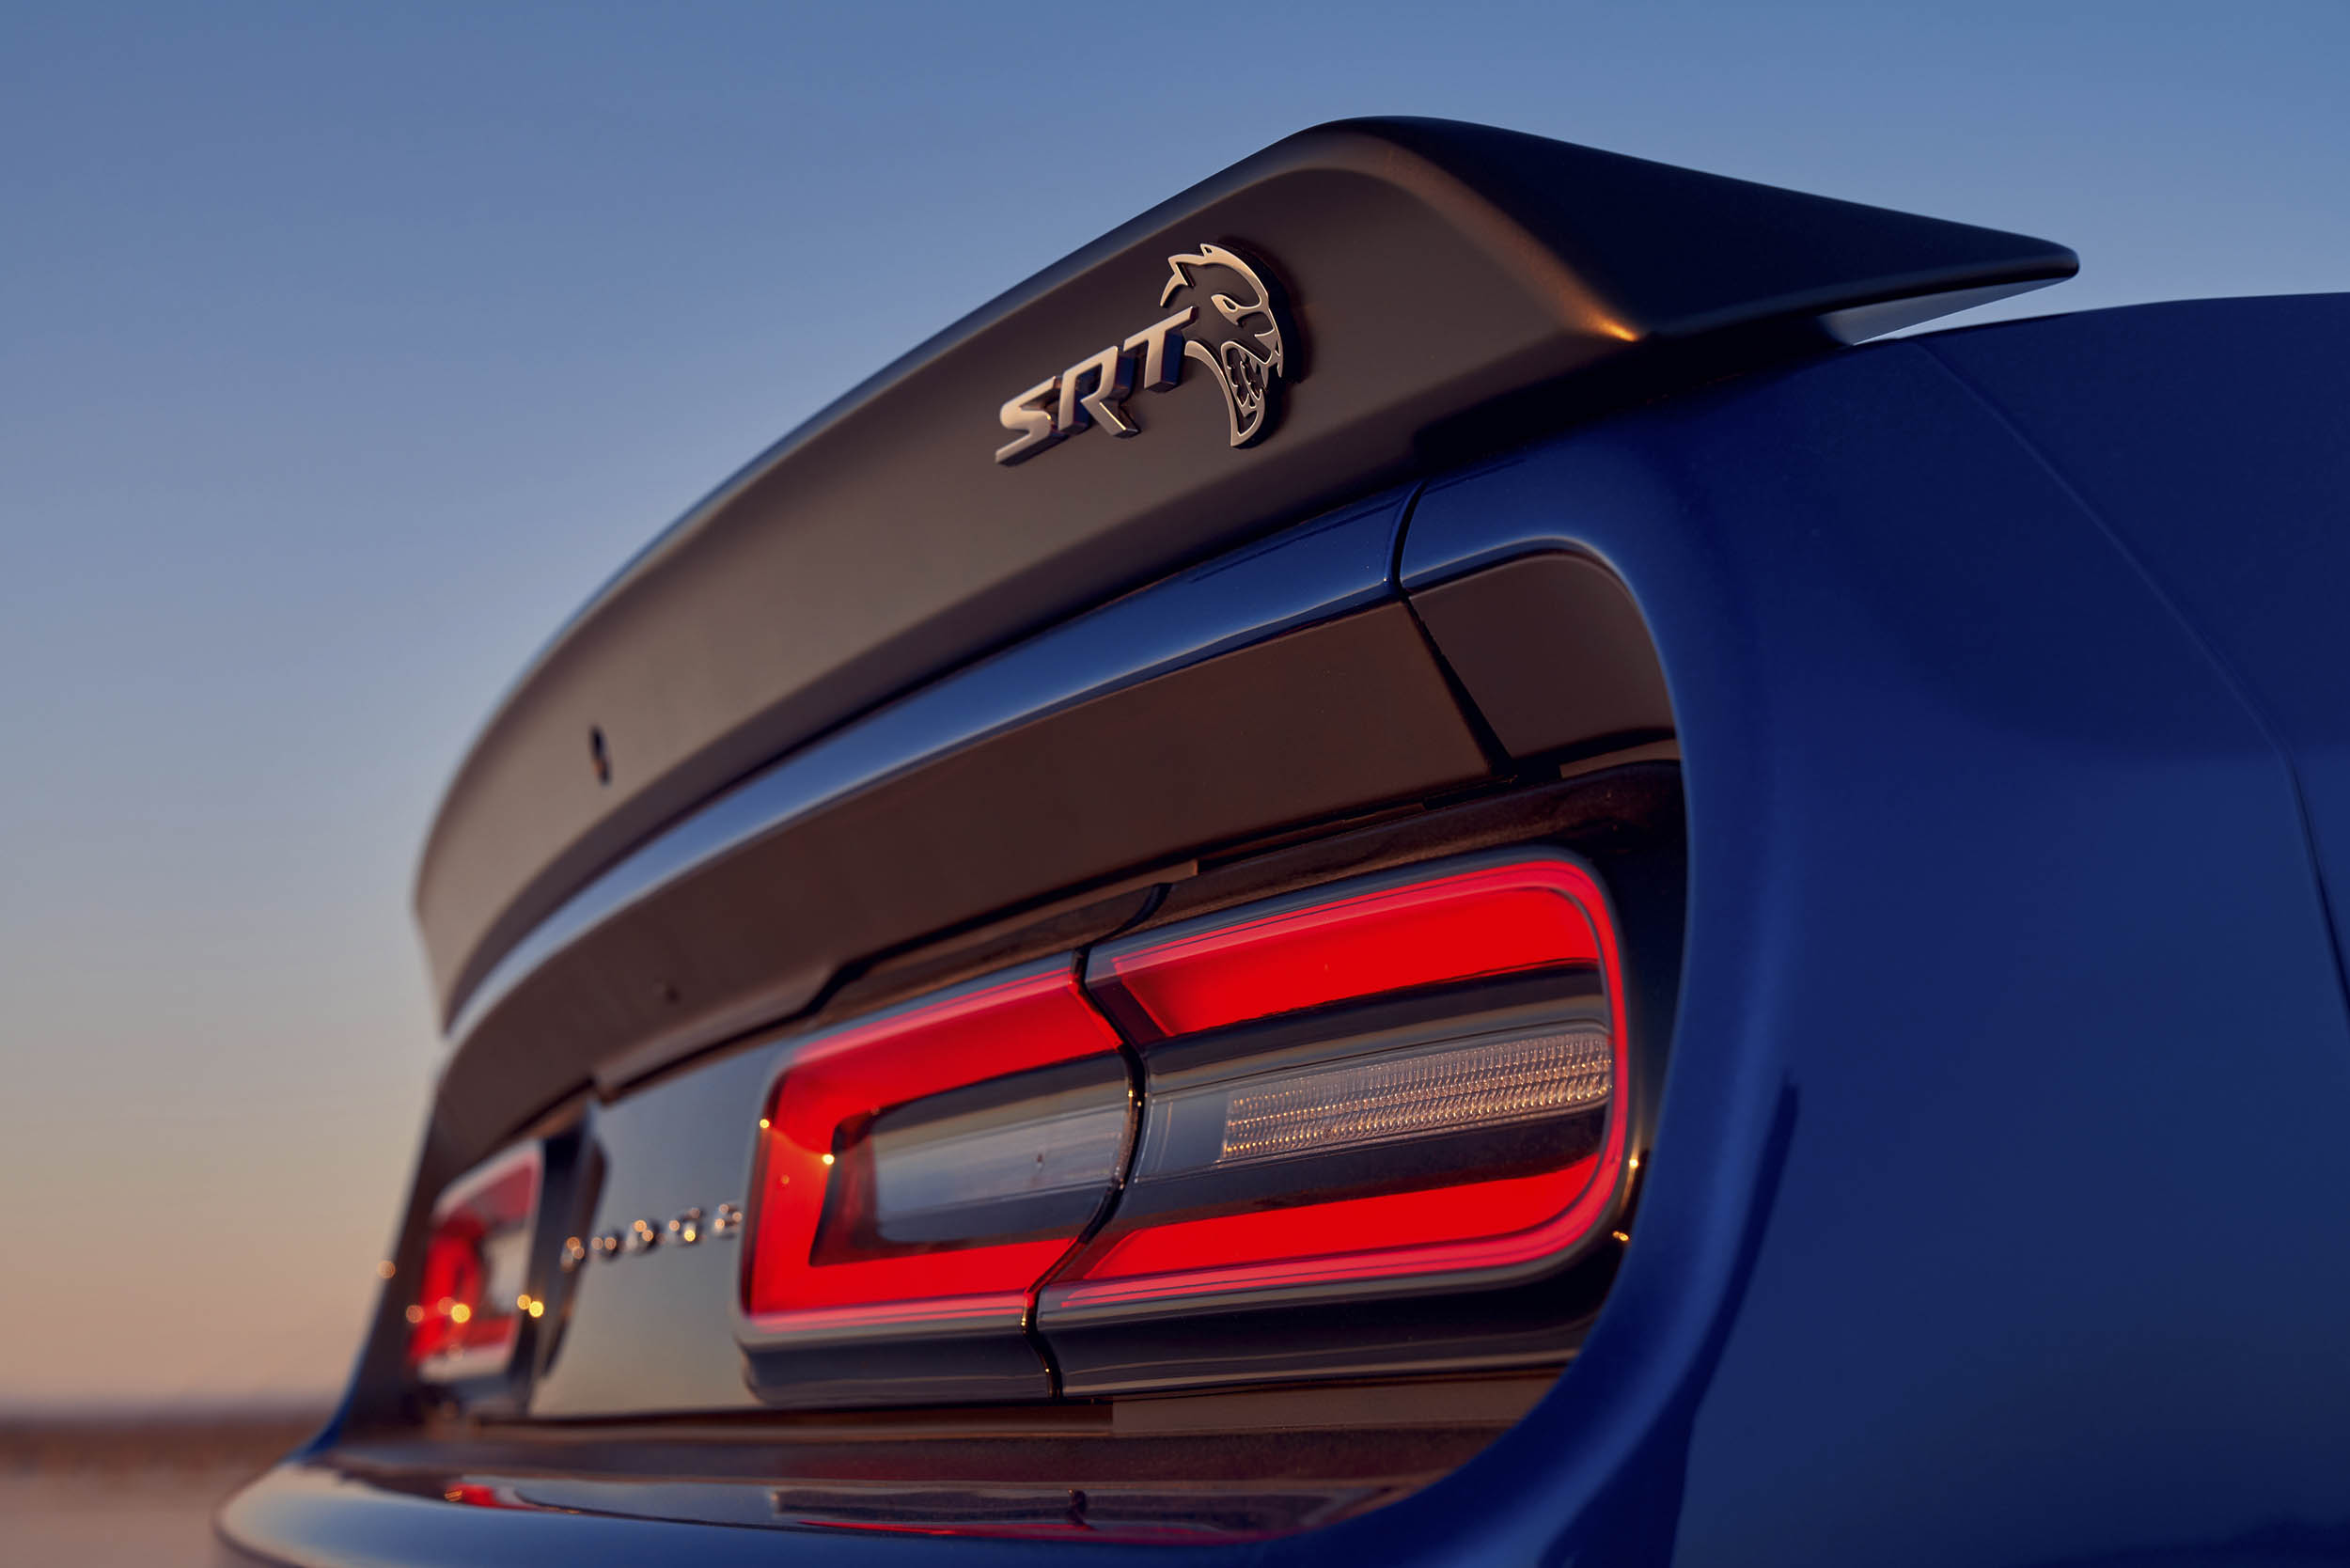 SRT Spoiler on 2019 Dodge Challenger SRT Hellcat Widebody